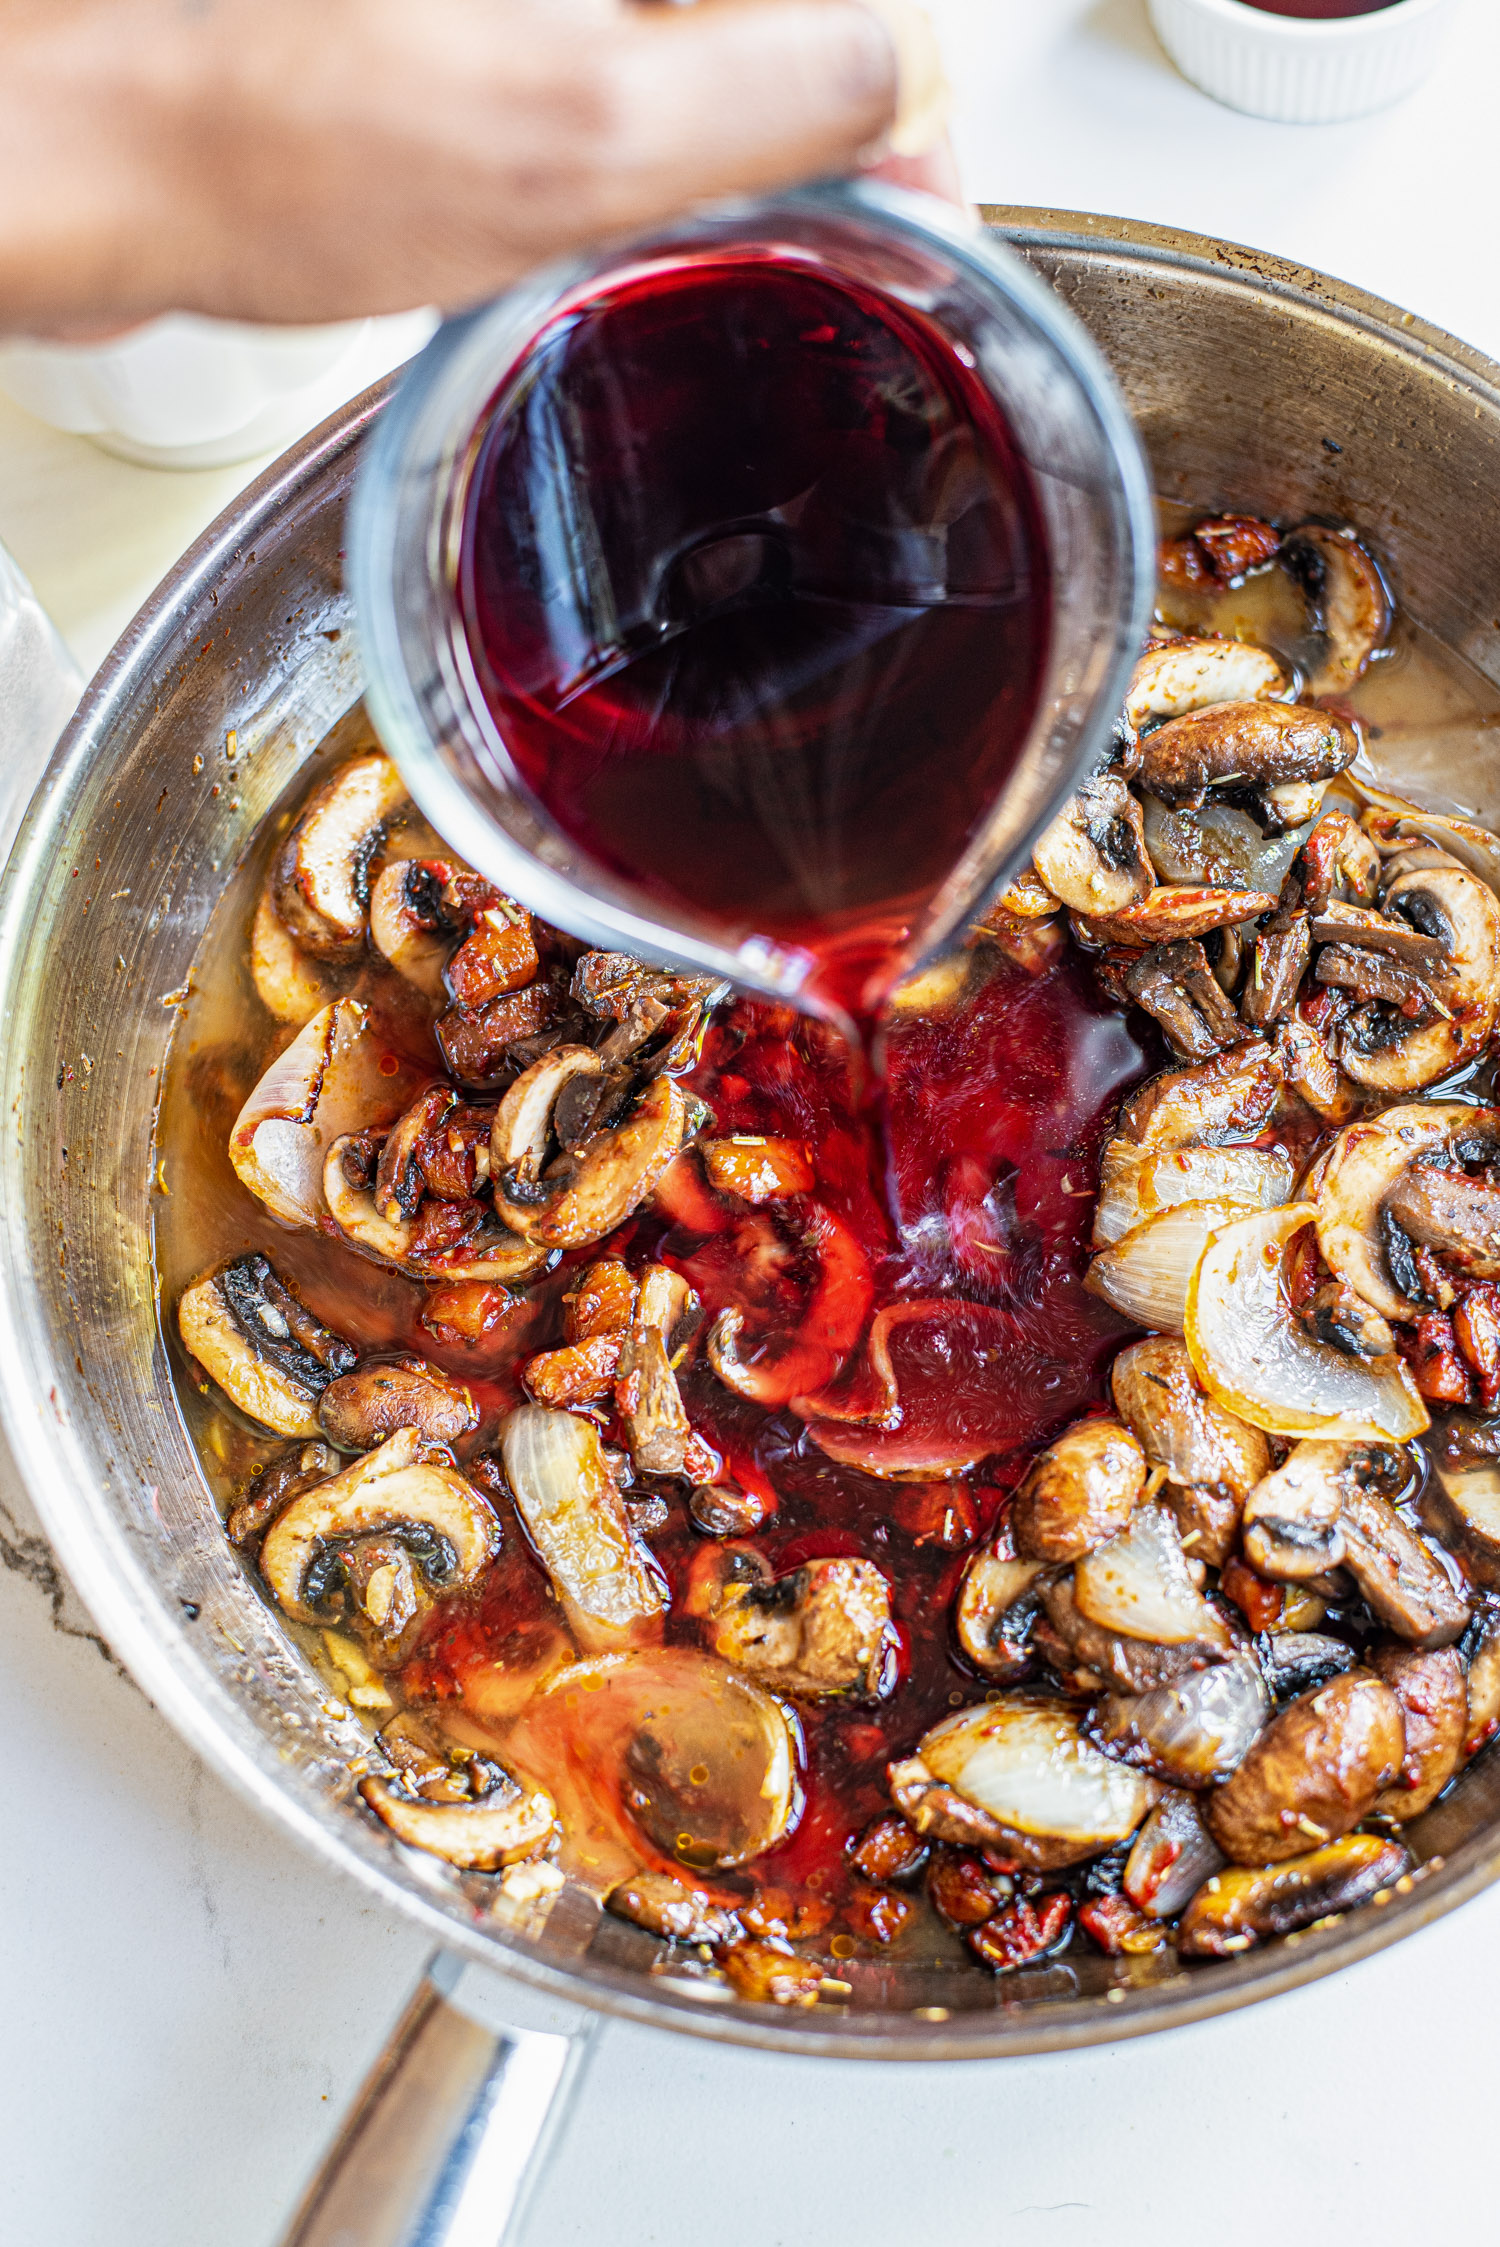 pouring red wine over mushrooms in a skillet